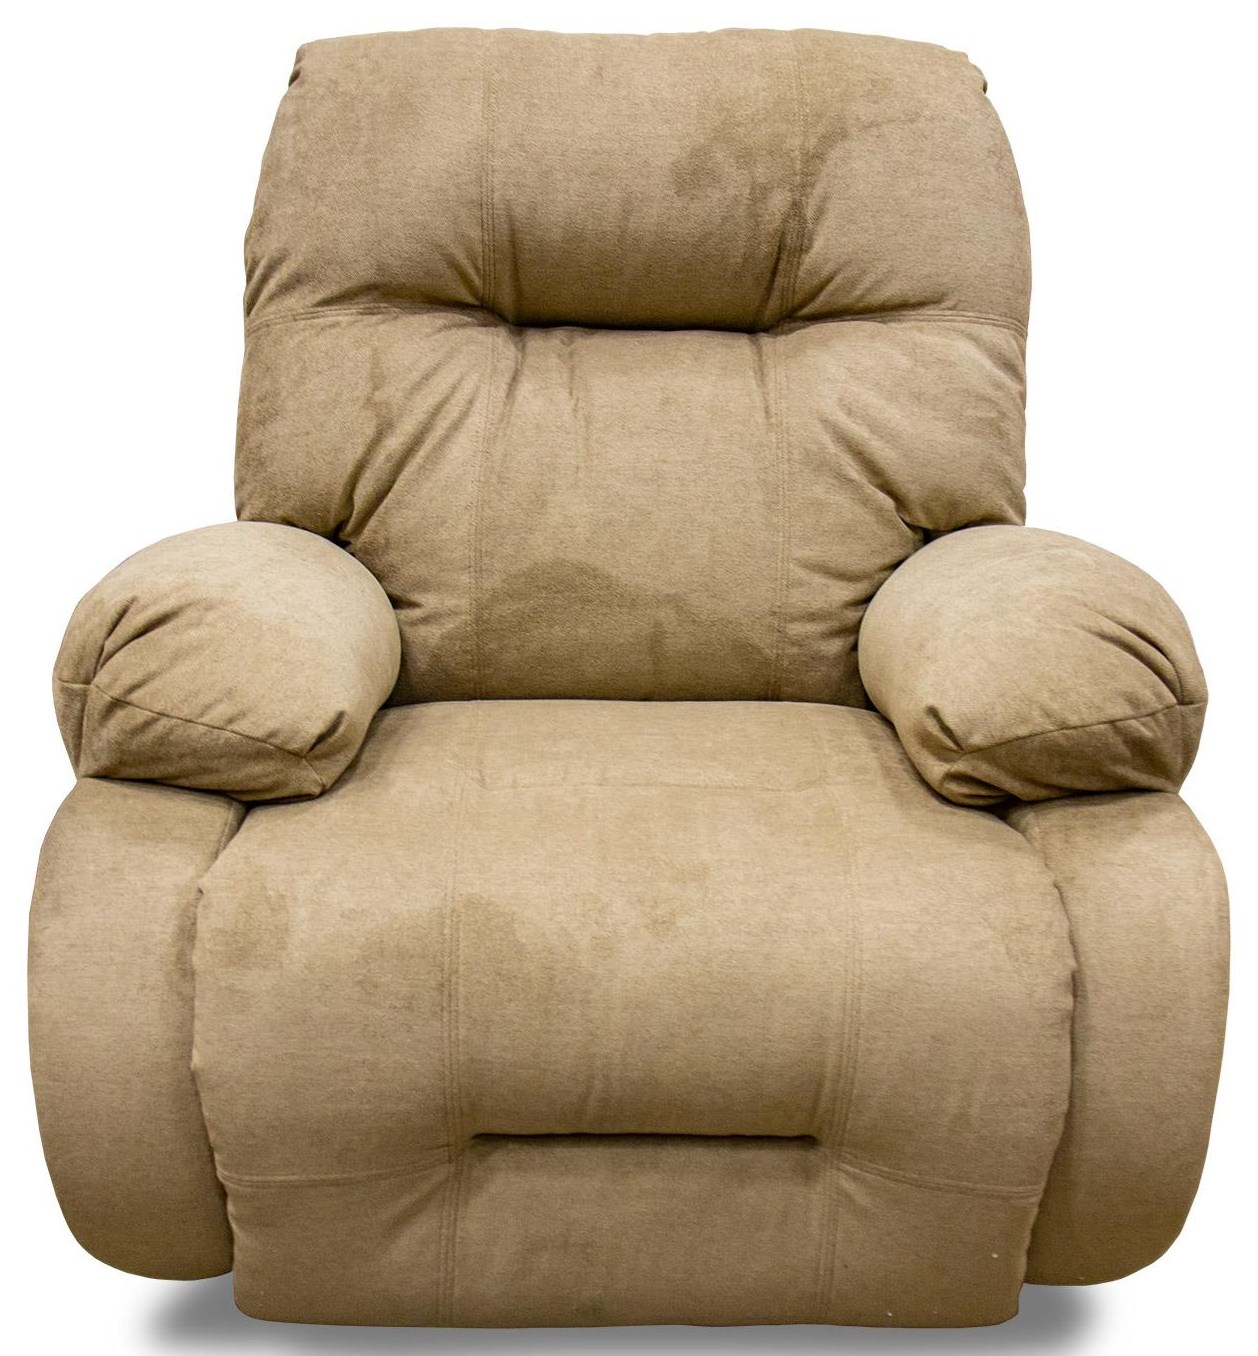 Best Home Furnishings Brinley 2 Brinley2 Khaki Rocker Recliner in Opticlean  - Item Number: 8MW8720229